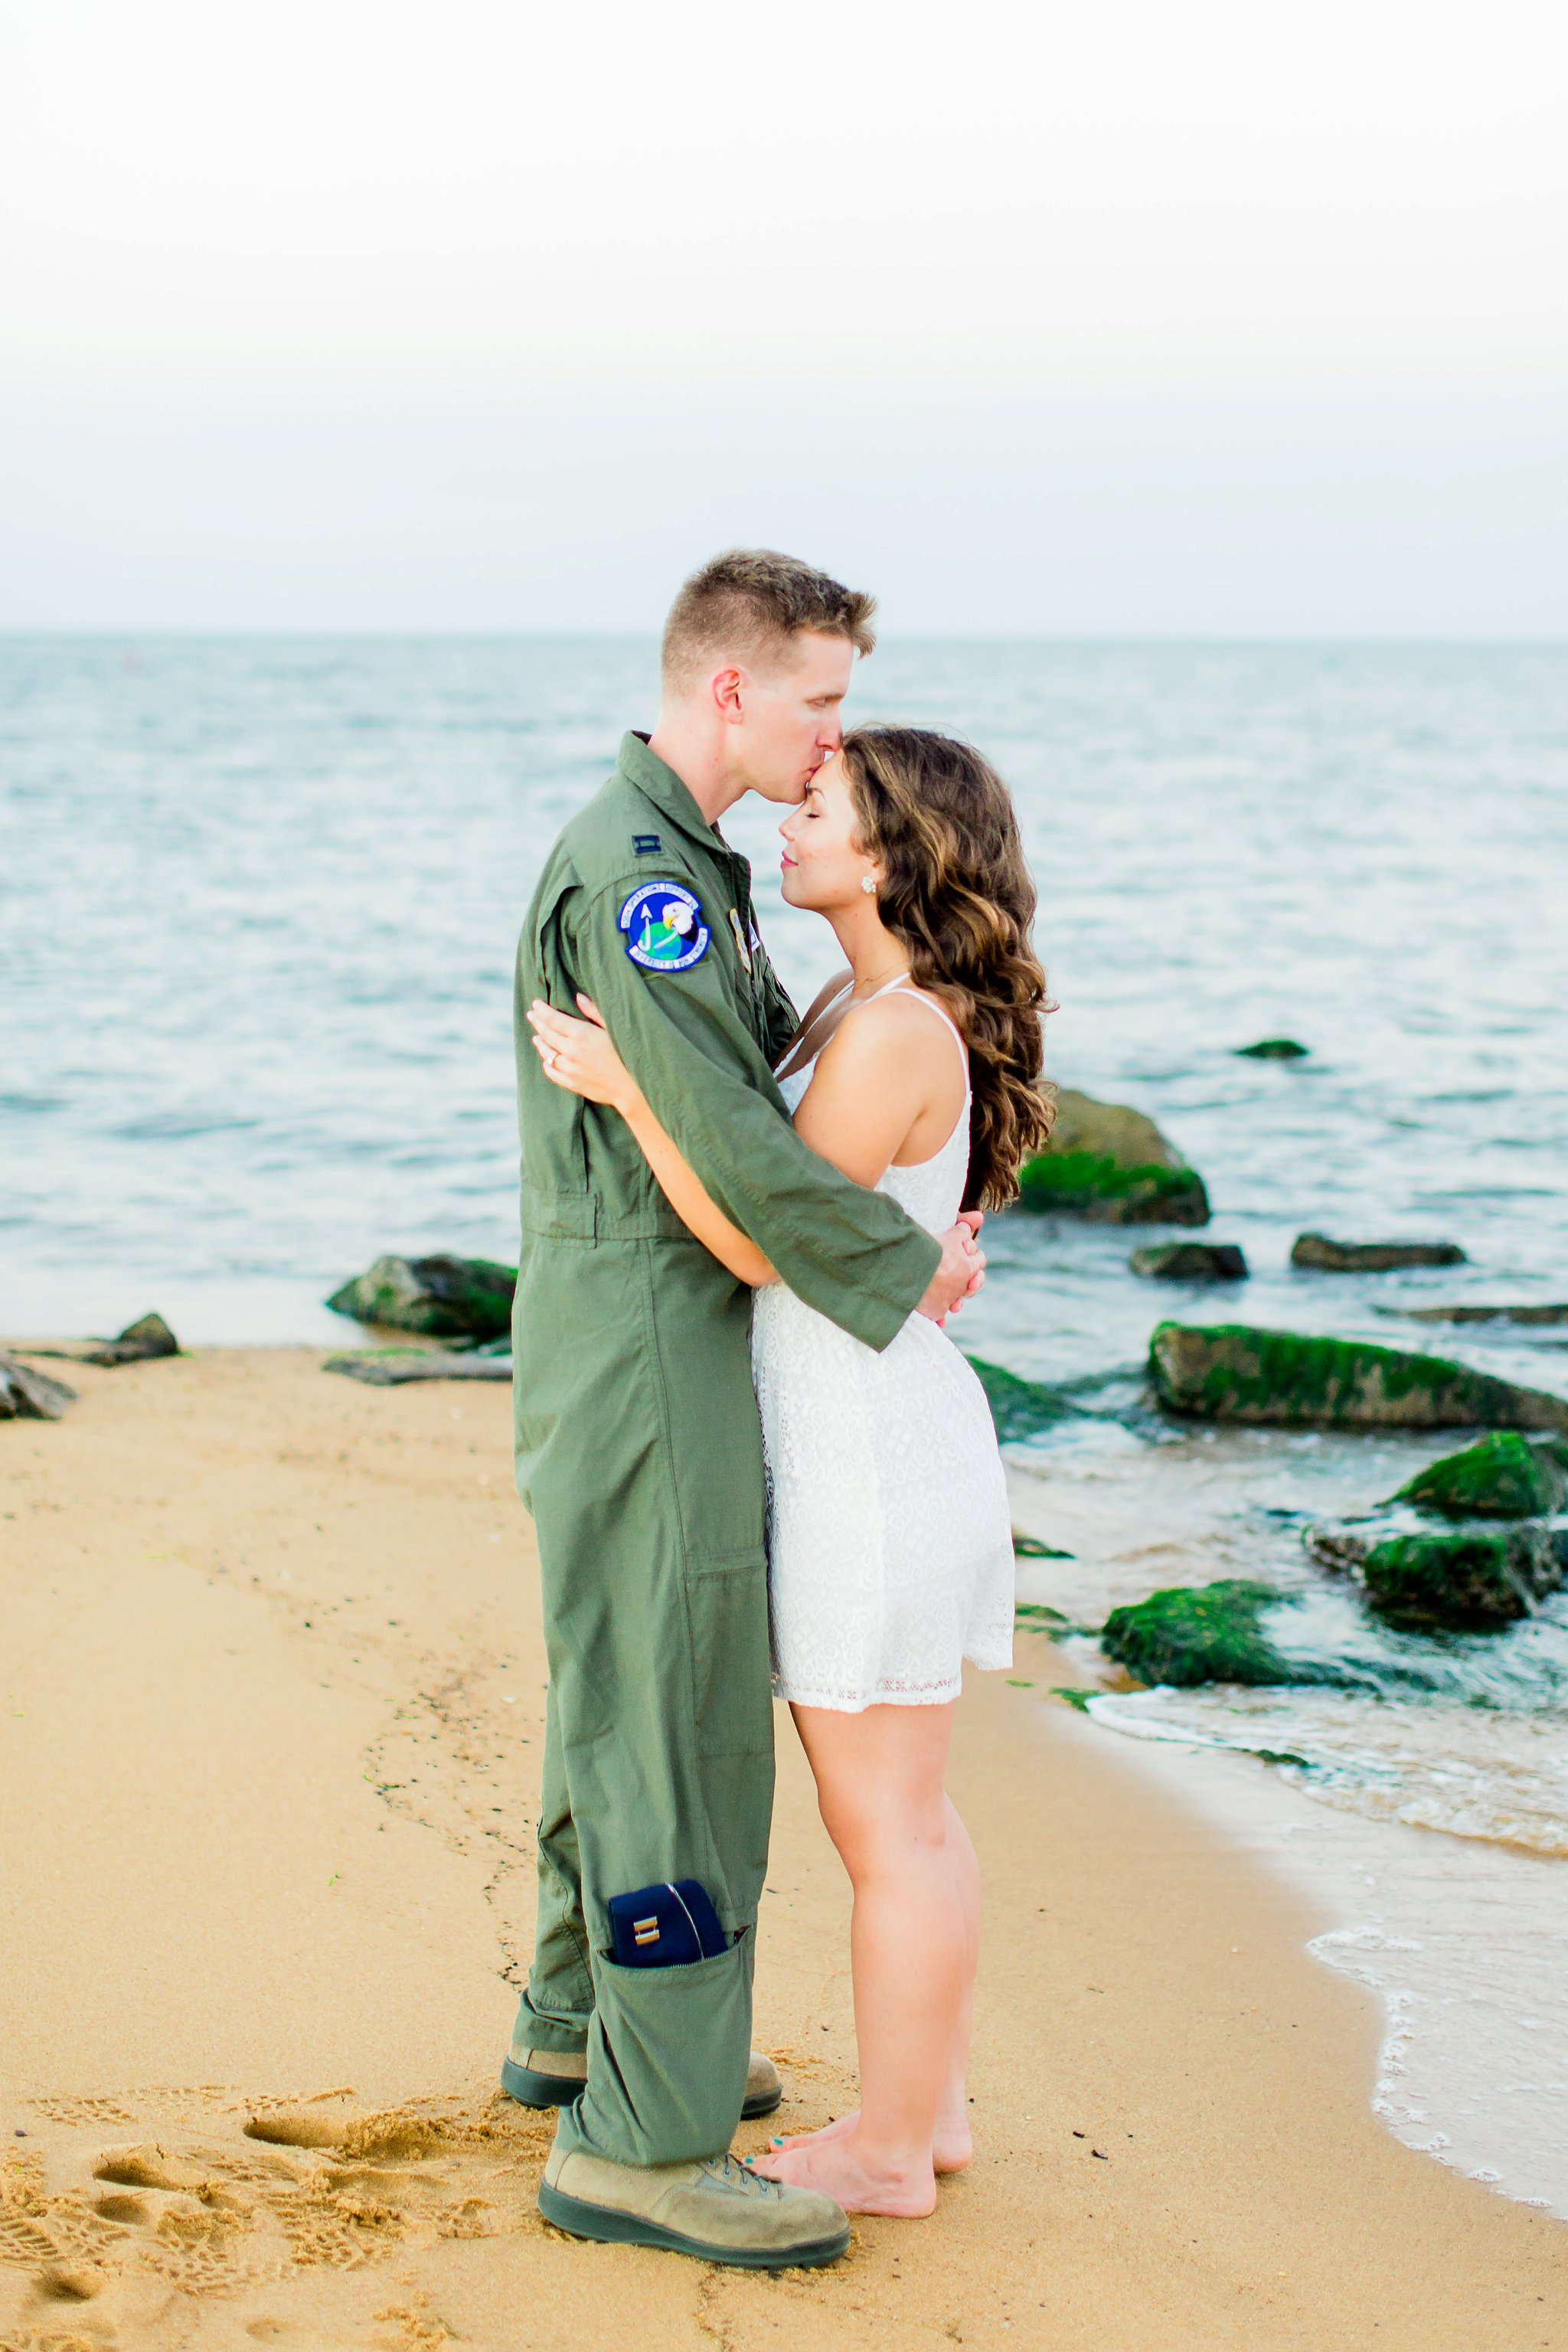 Downtown Annapolis Engagement Photos Maryland Wedding Photographer Megan Kelsey Photography Sam & Angela-190.jpg